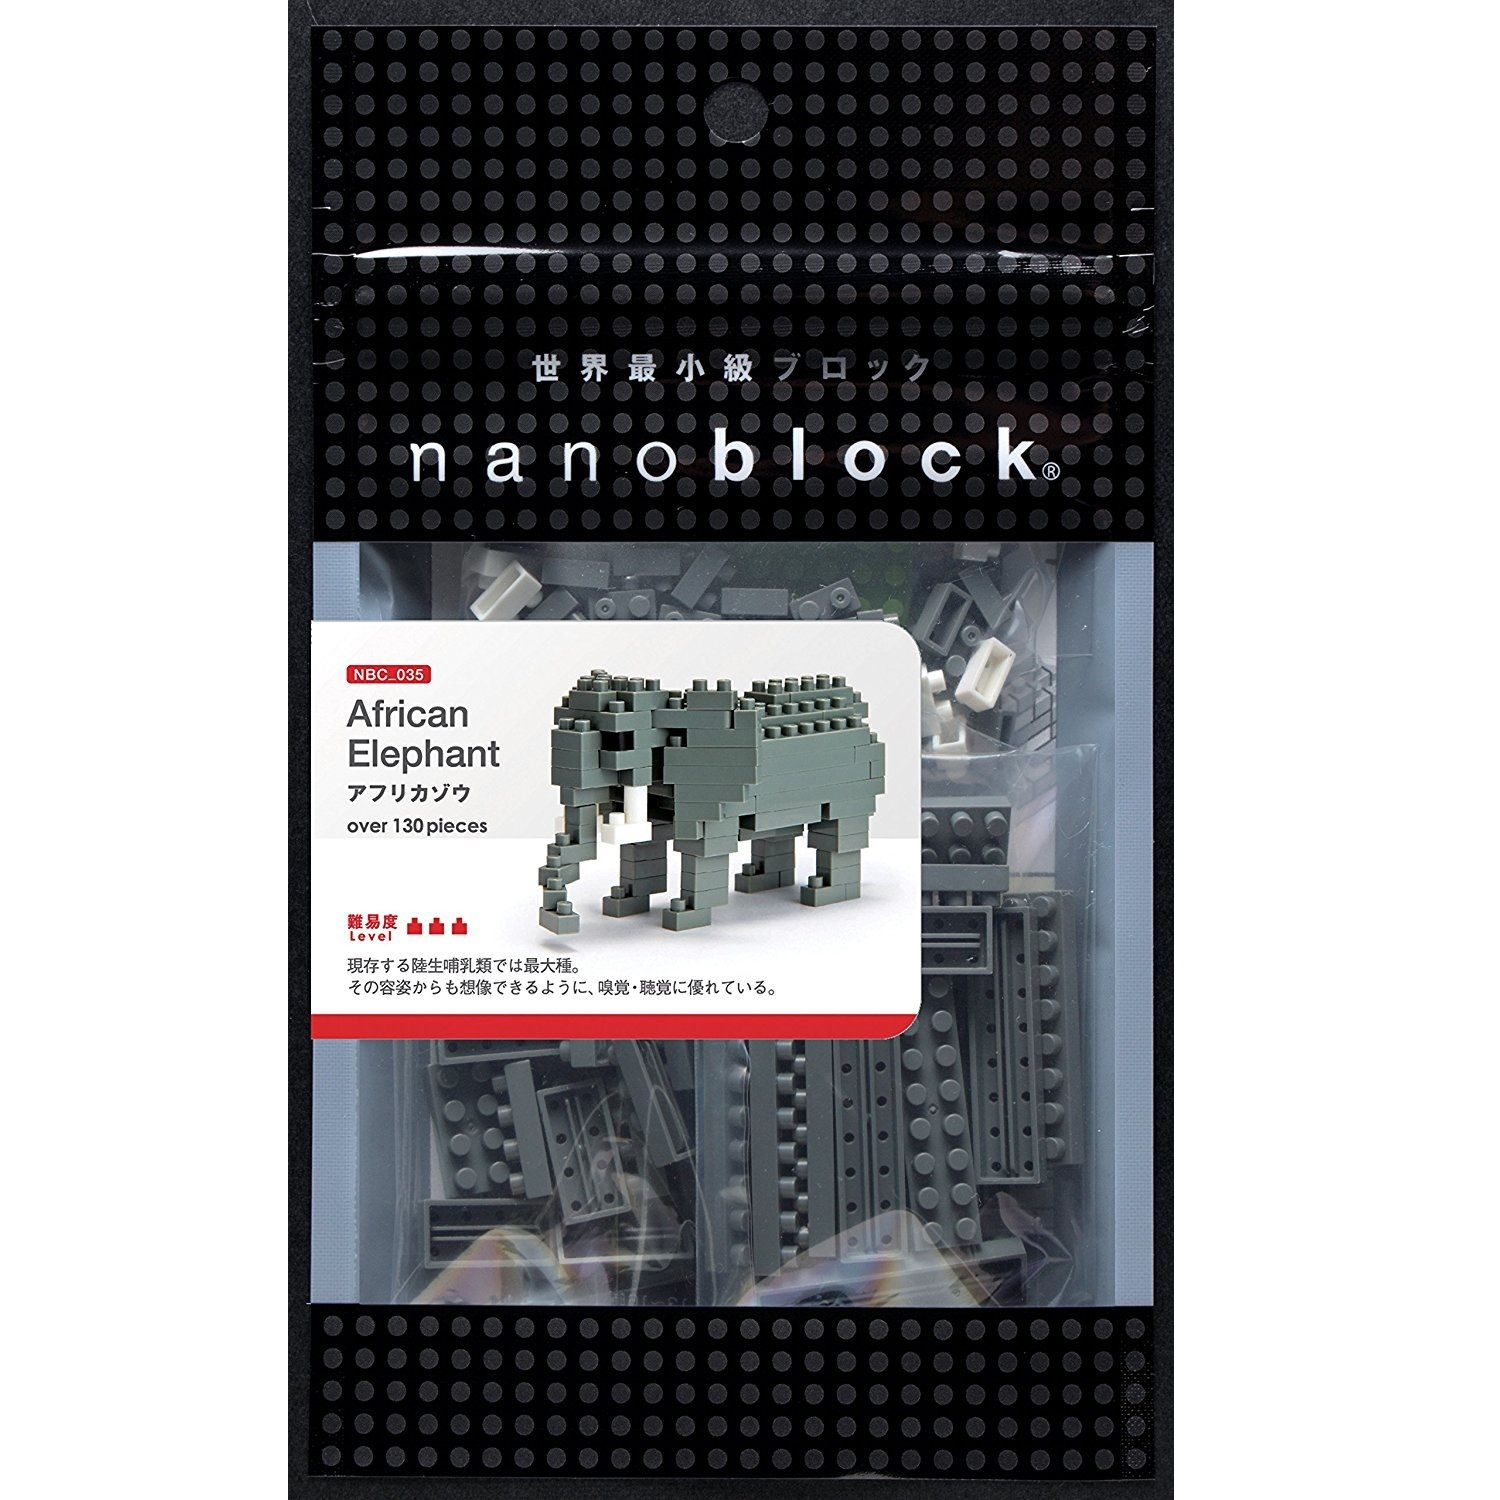 African Elephant Mini (Nanoblock) Building Set by Nanoblock (NBC035) by nanoblock